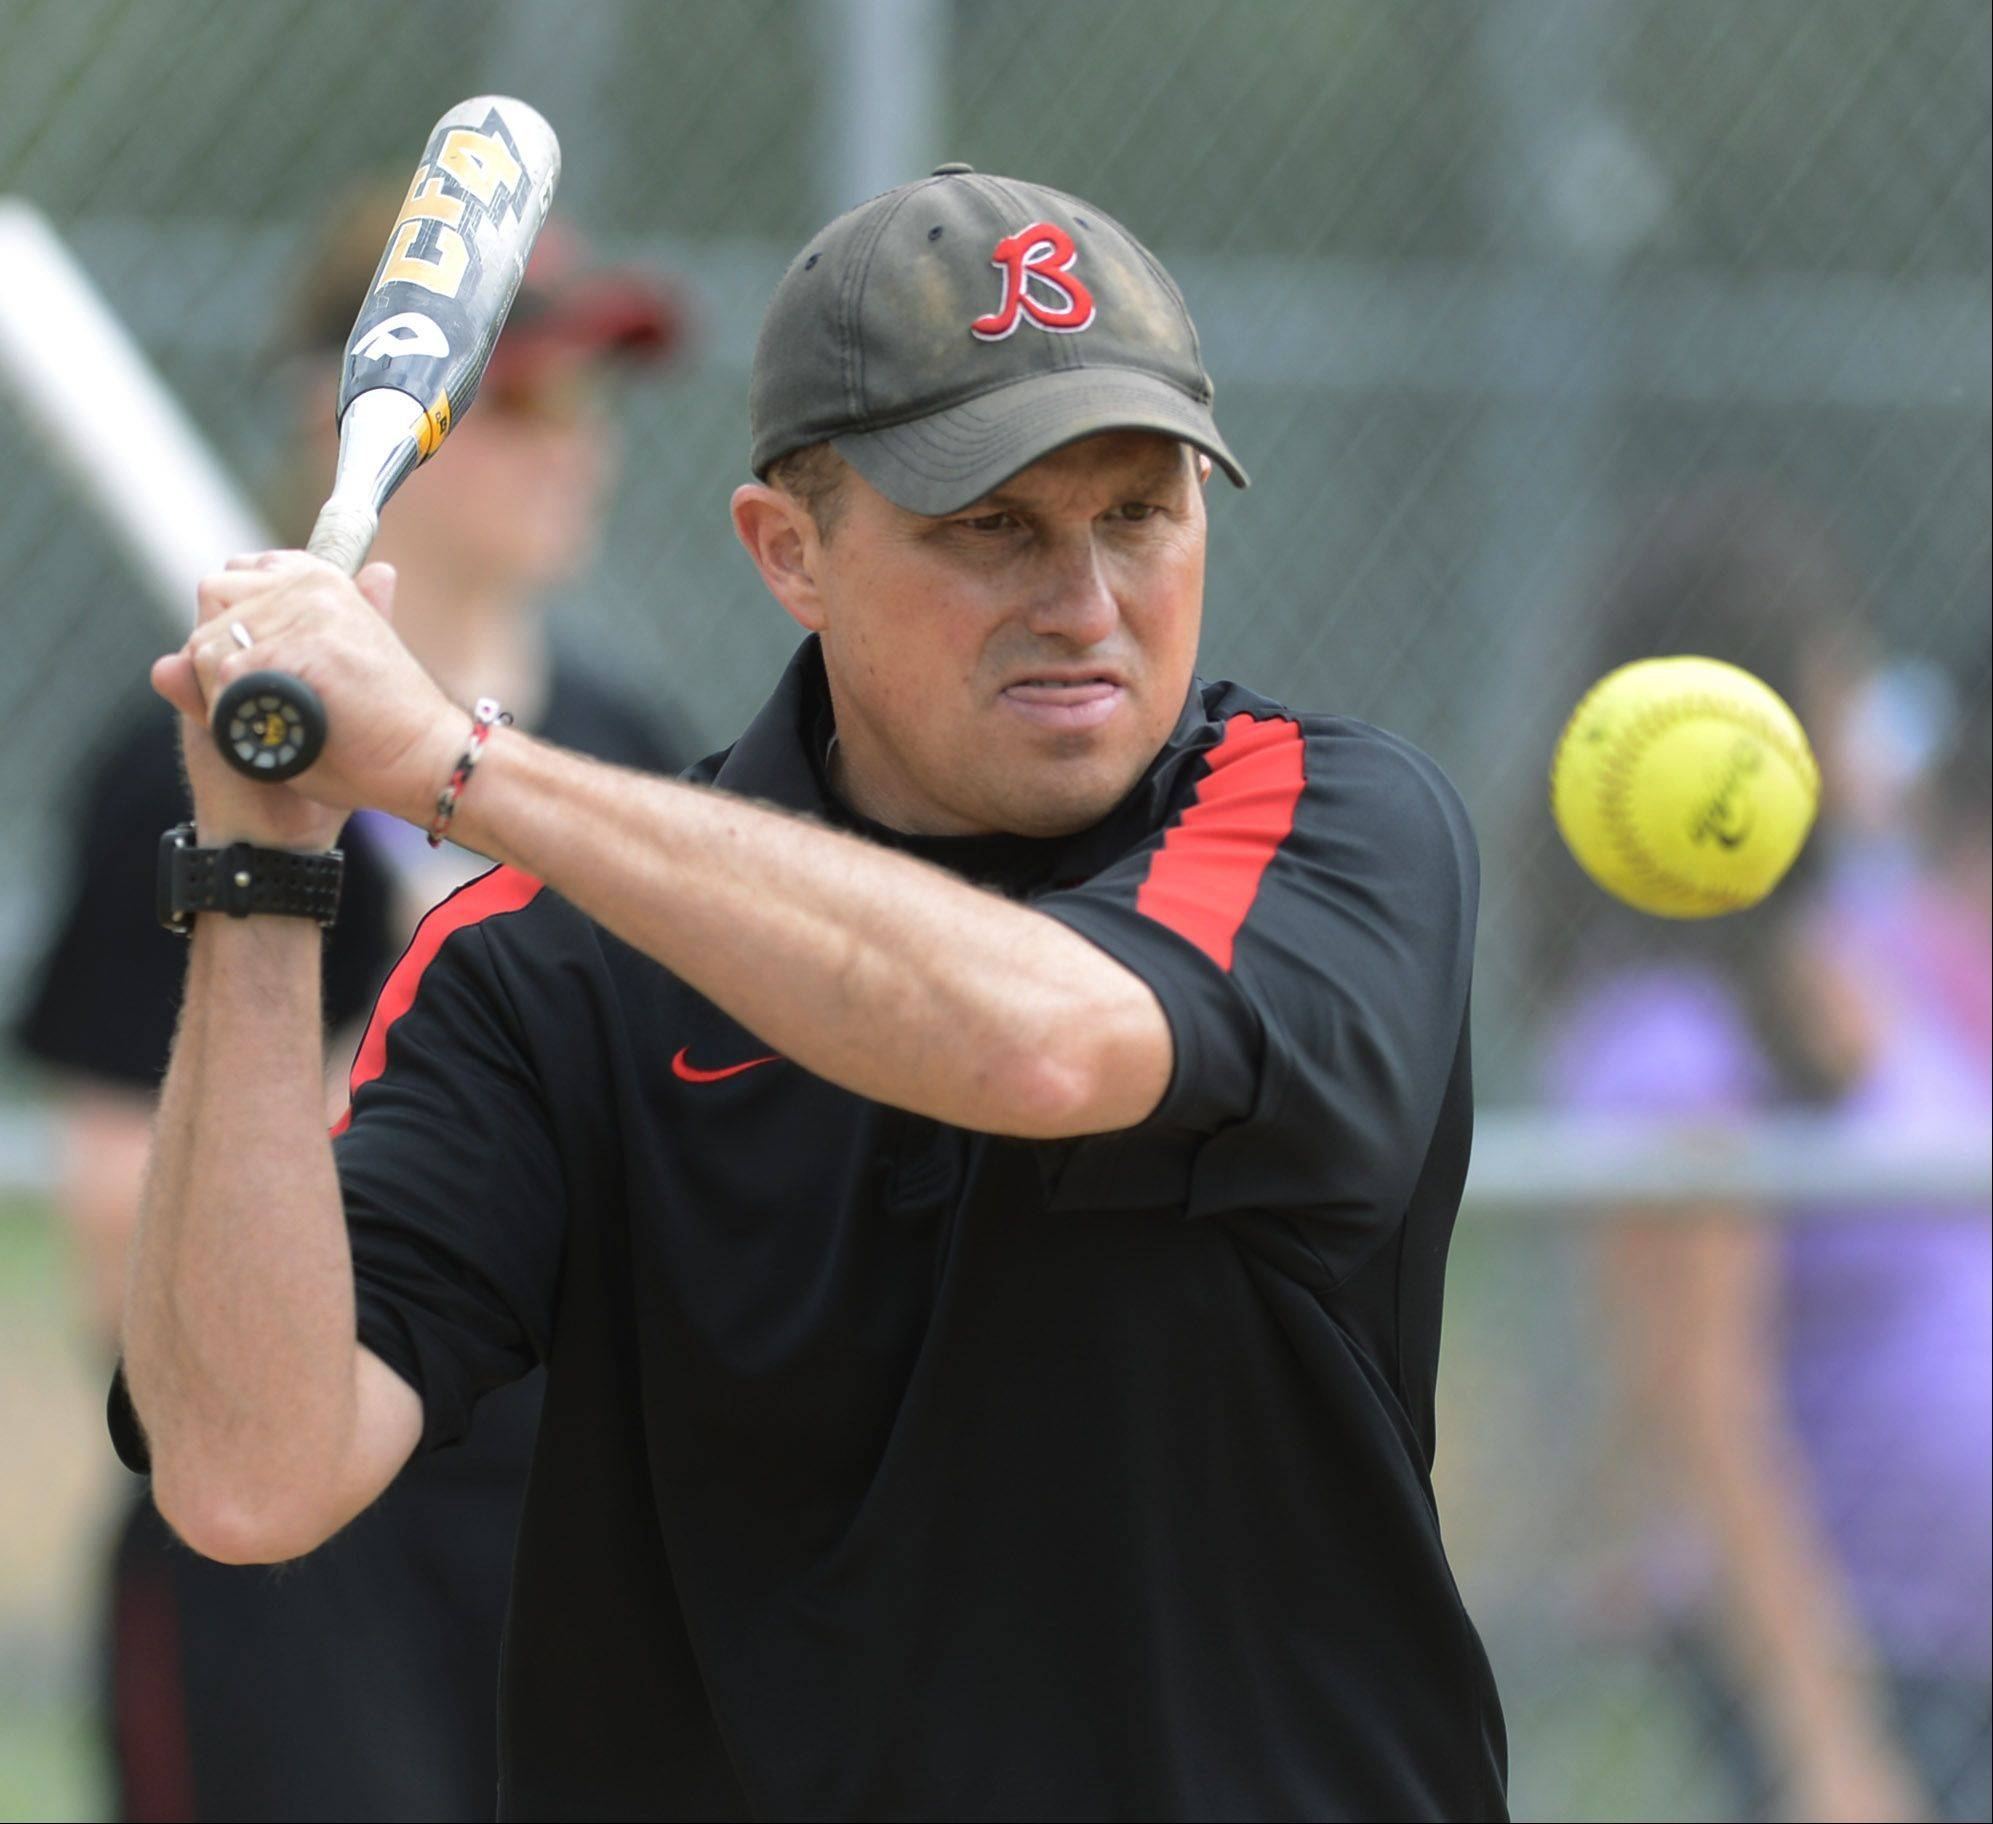 Barrington hopes to make history downstate